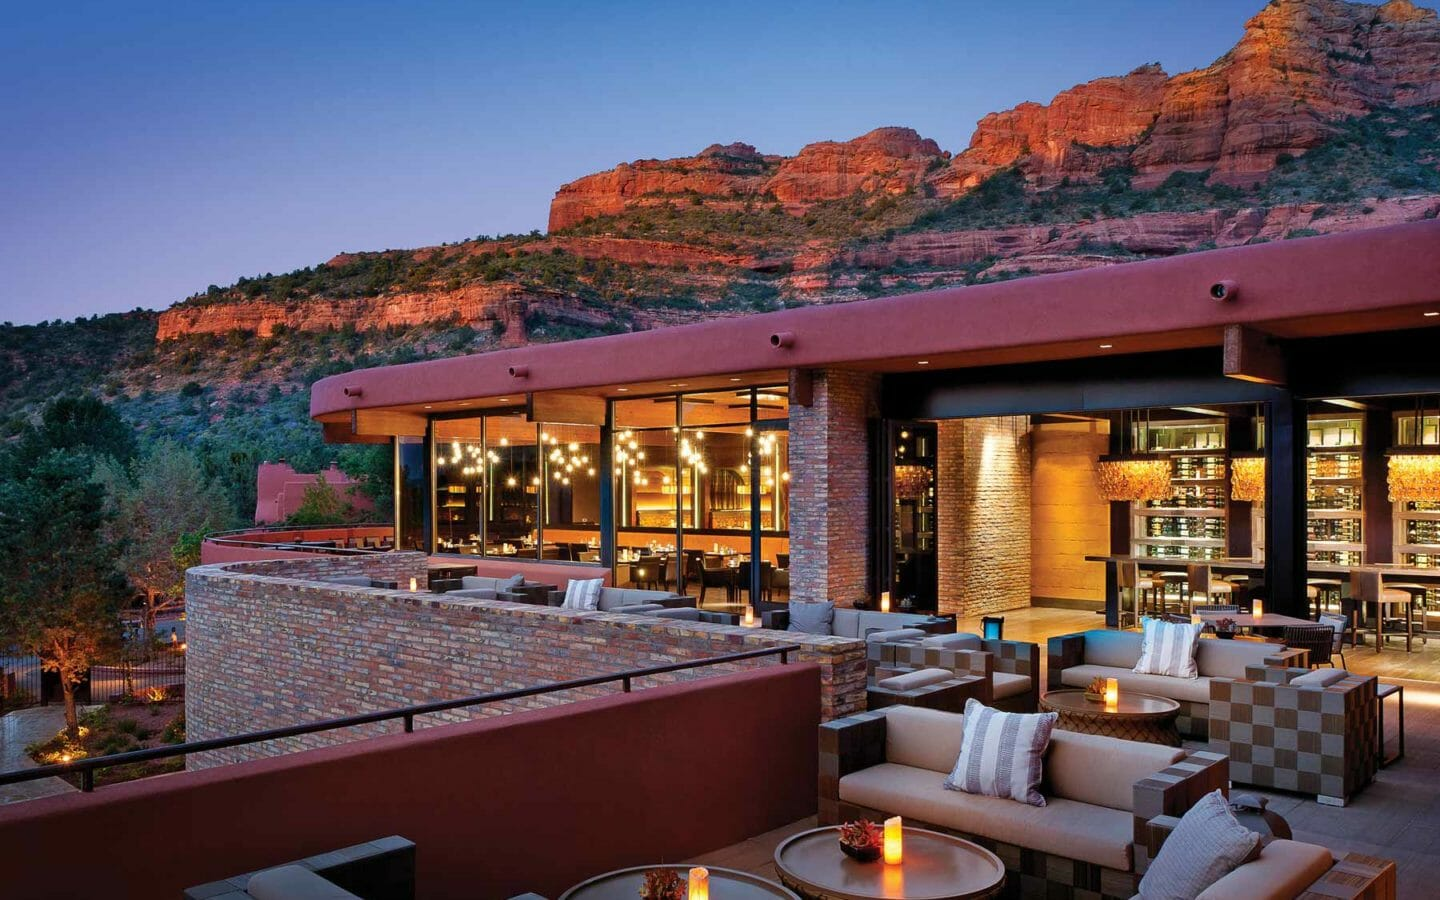 outdoor dining area on a restaurant patio in the evening